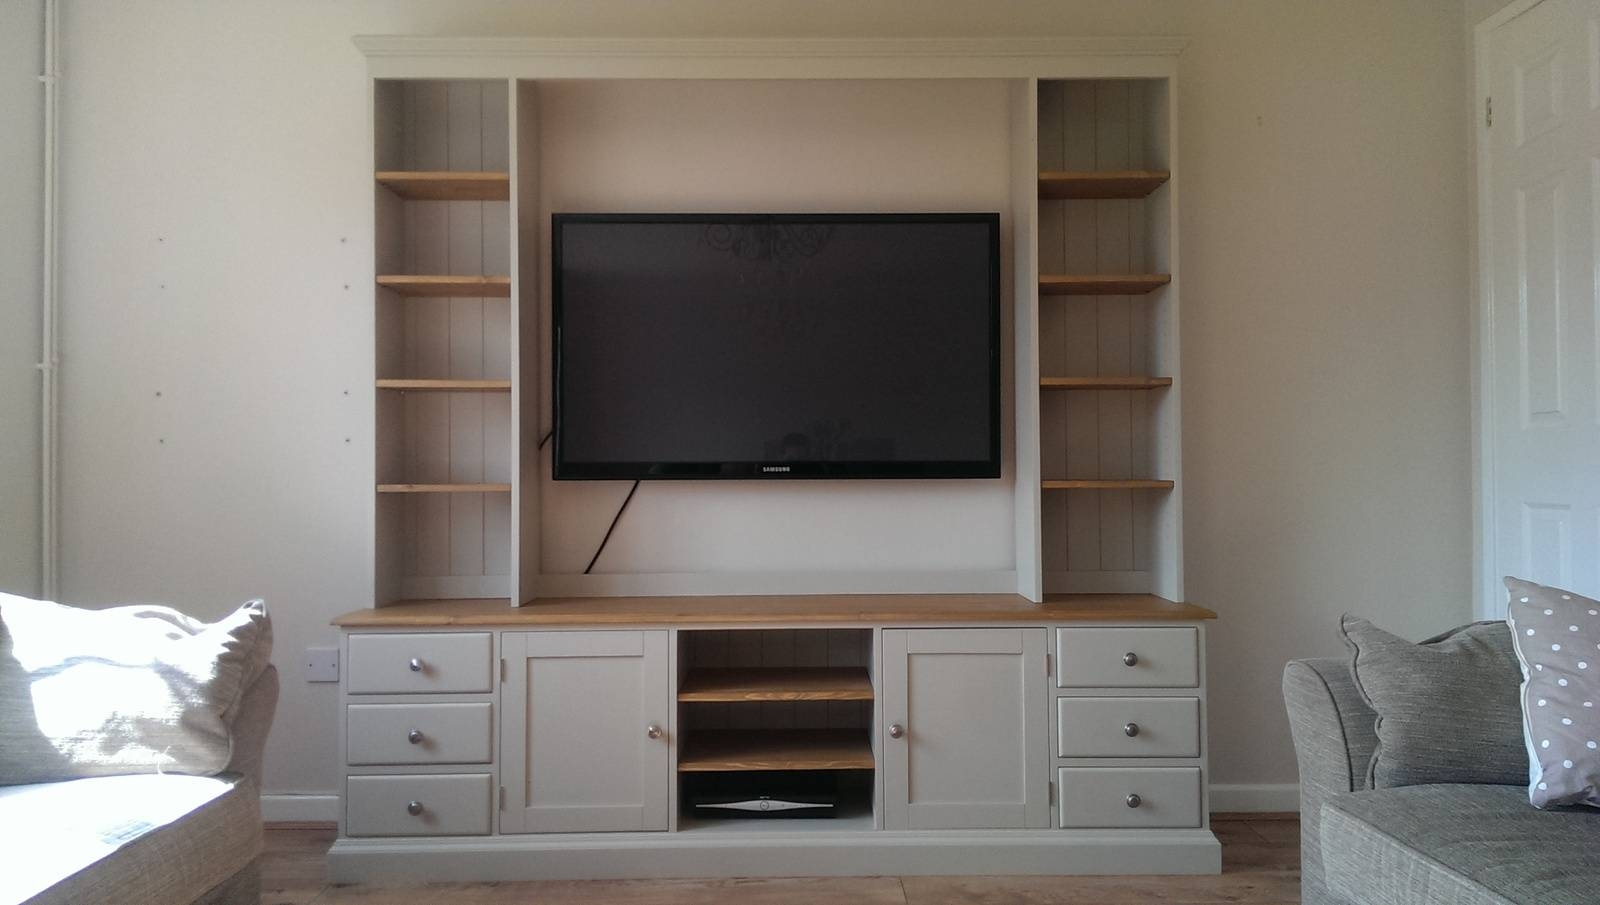 Tv / Entertainment Unit - Pine, Oak, Painted And Bespoke Furniture regarding Tv Entertainment Unit (Image 9 of 15)